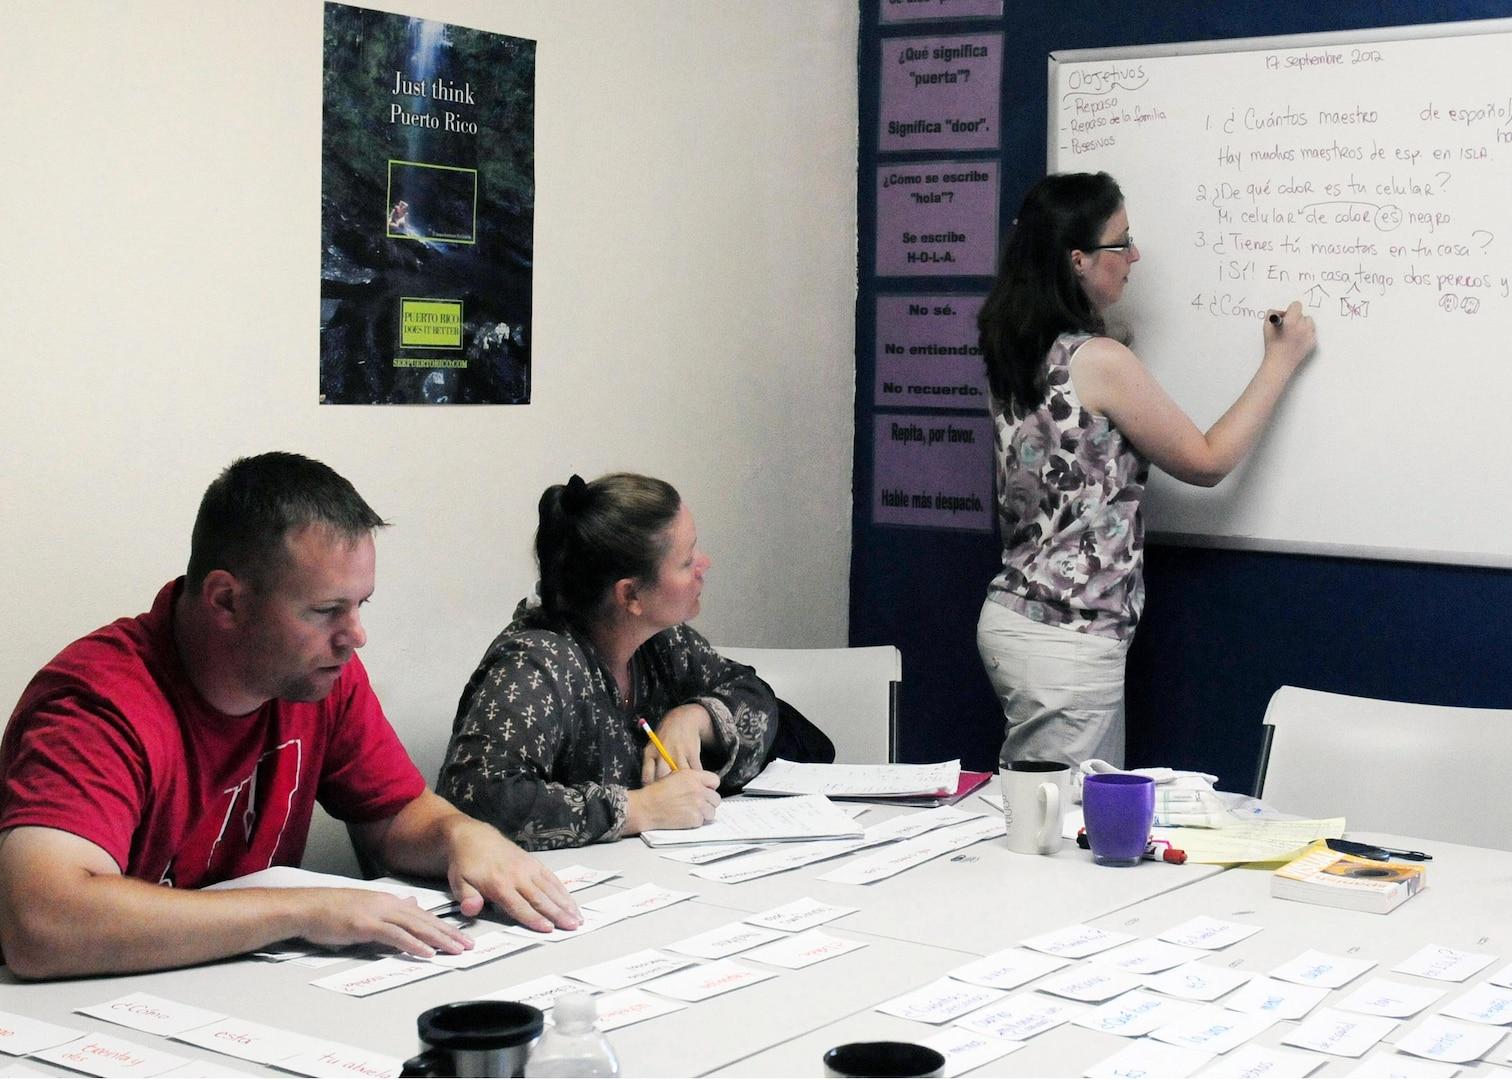 Anna Holt, Spanish instructor at the Institute for Second Language Acquisition, Inc., teaches sentence structure as Military Engagement Team members learn and take notes, Sept. 17. The Military Engagement Team, consisting of 10 Wisconsin National Guard Soldiers spent two weeks in San Juan, Puerto Rico learning the language and about Spanish culture.